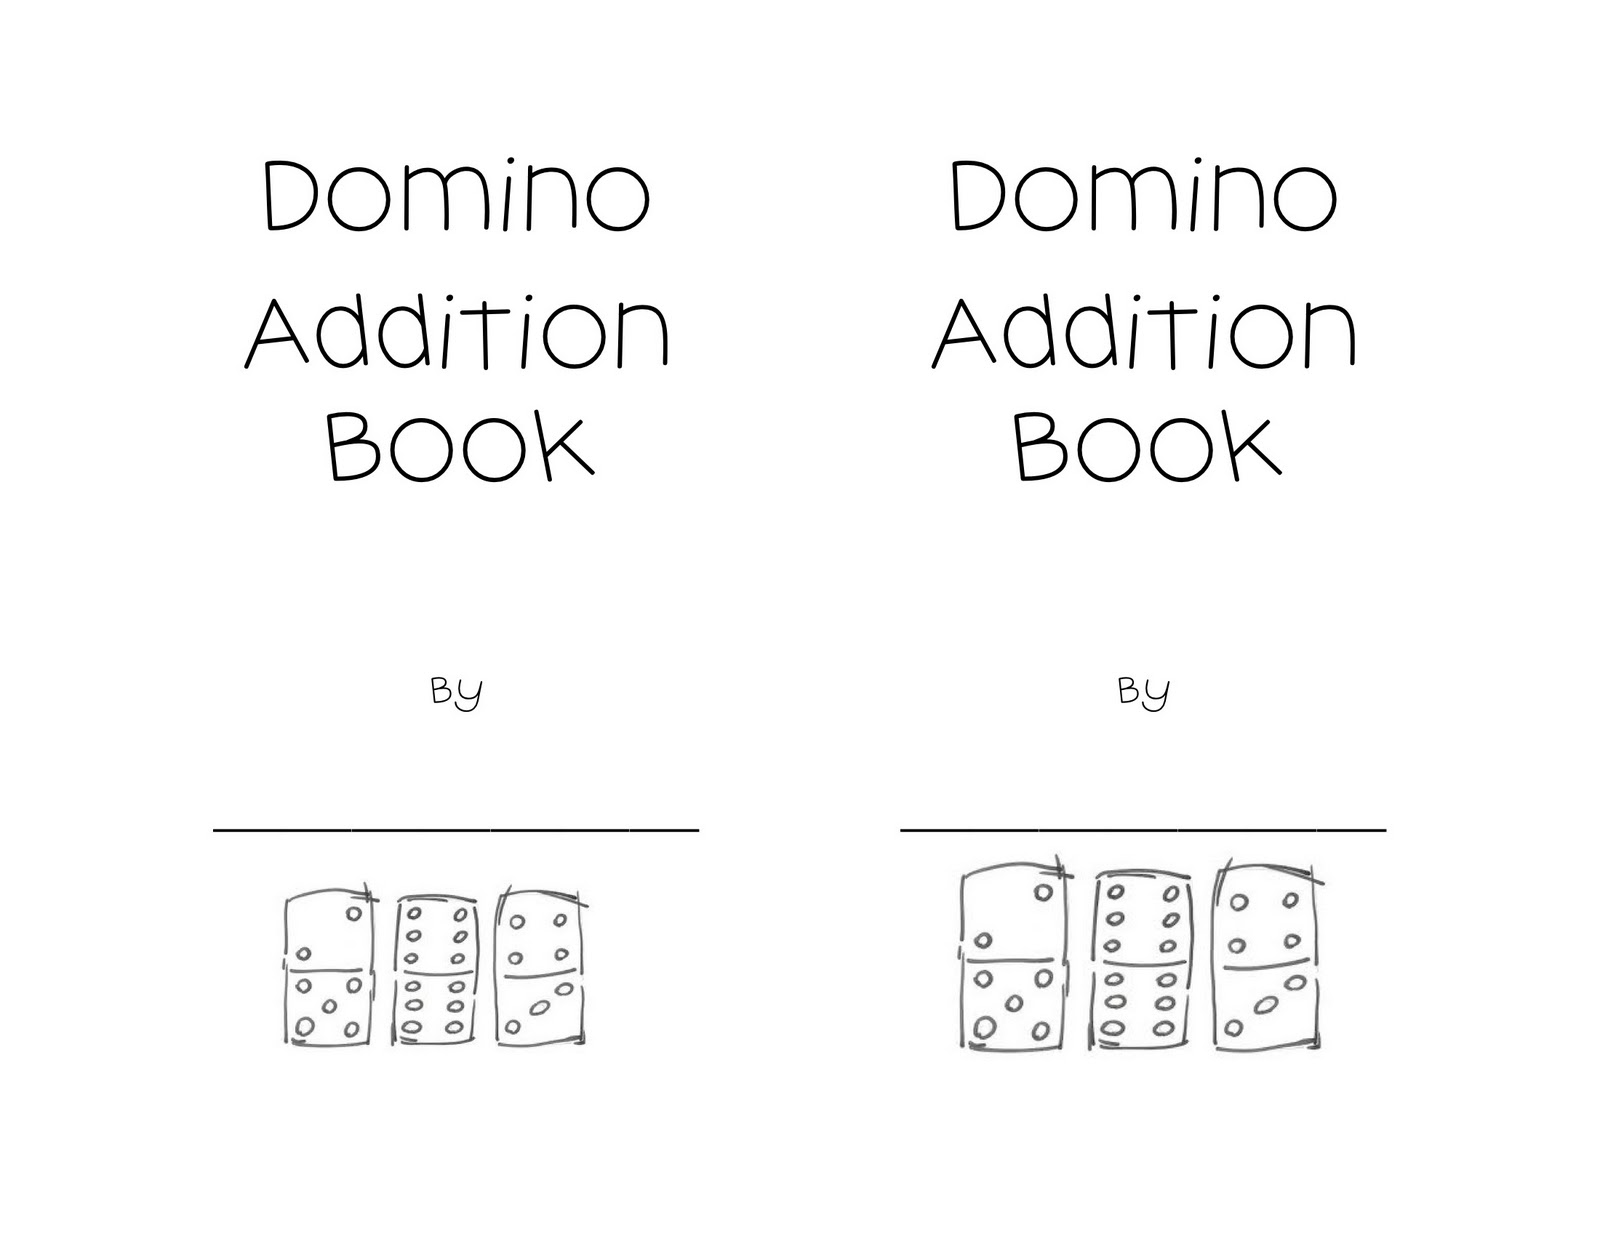 Kindergarten Night Owls Domino Addition Book